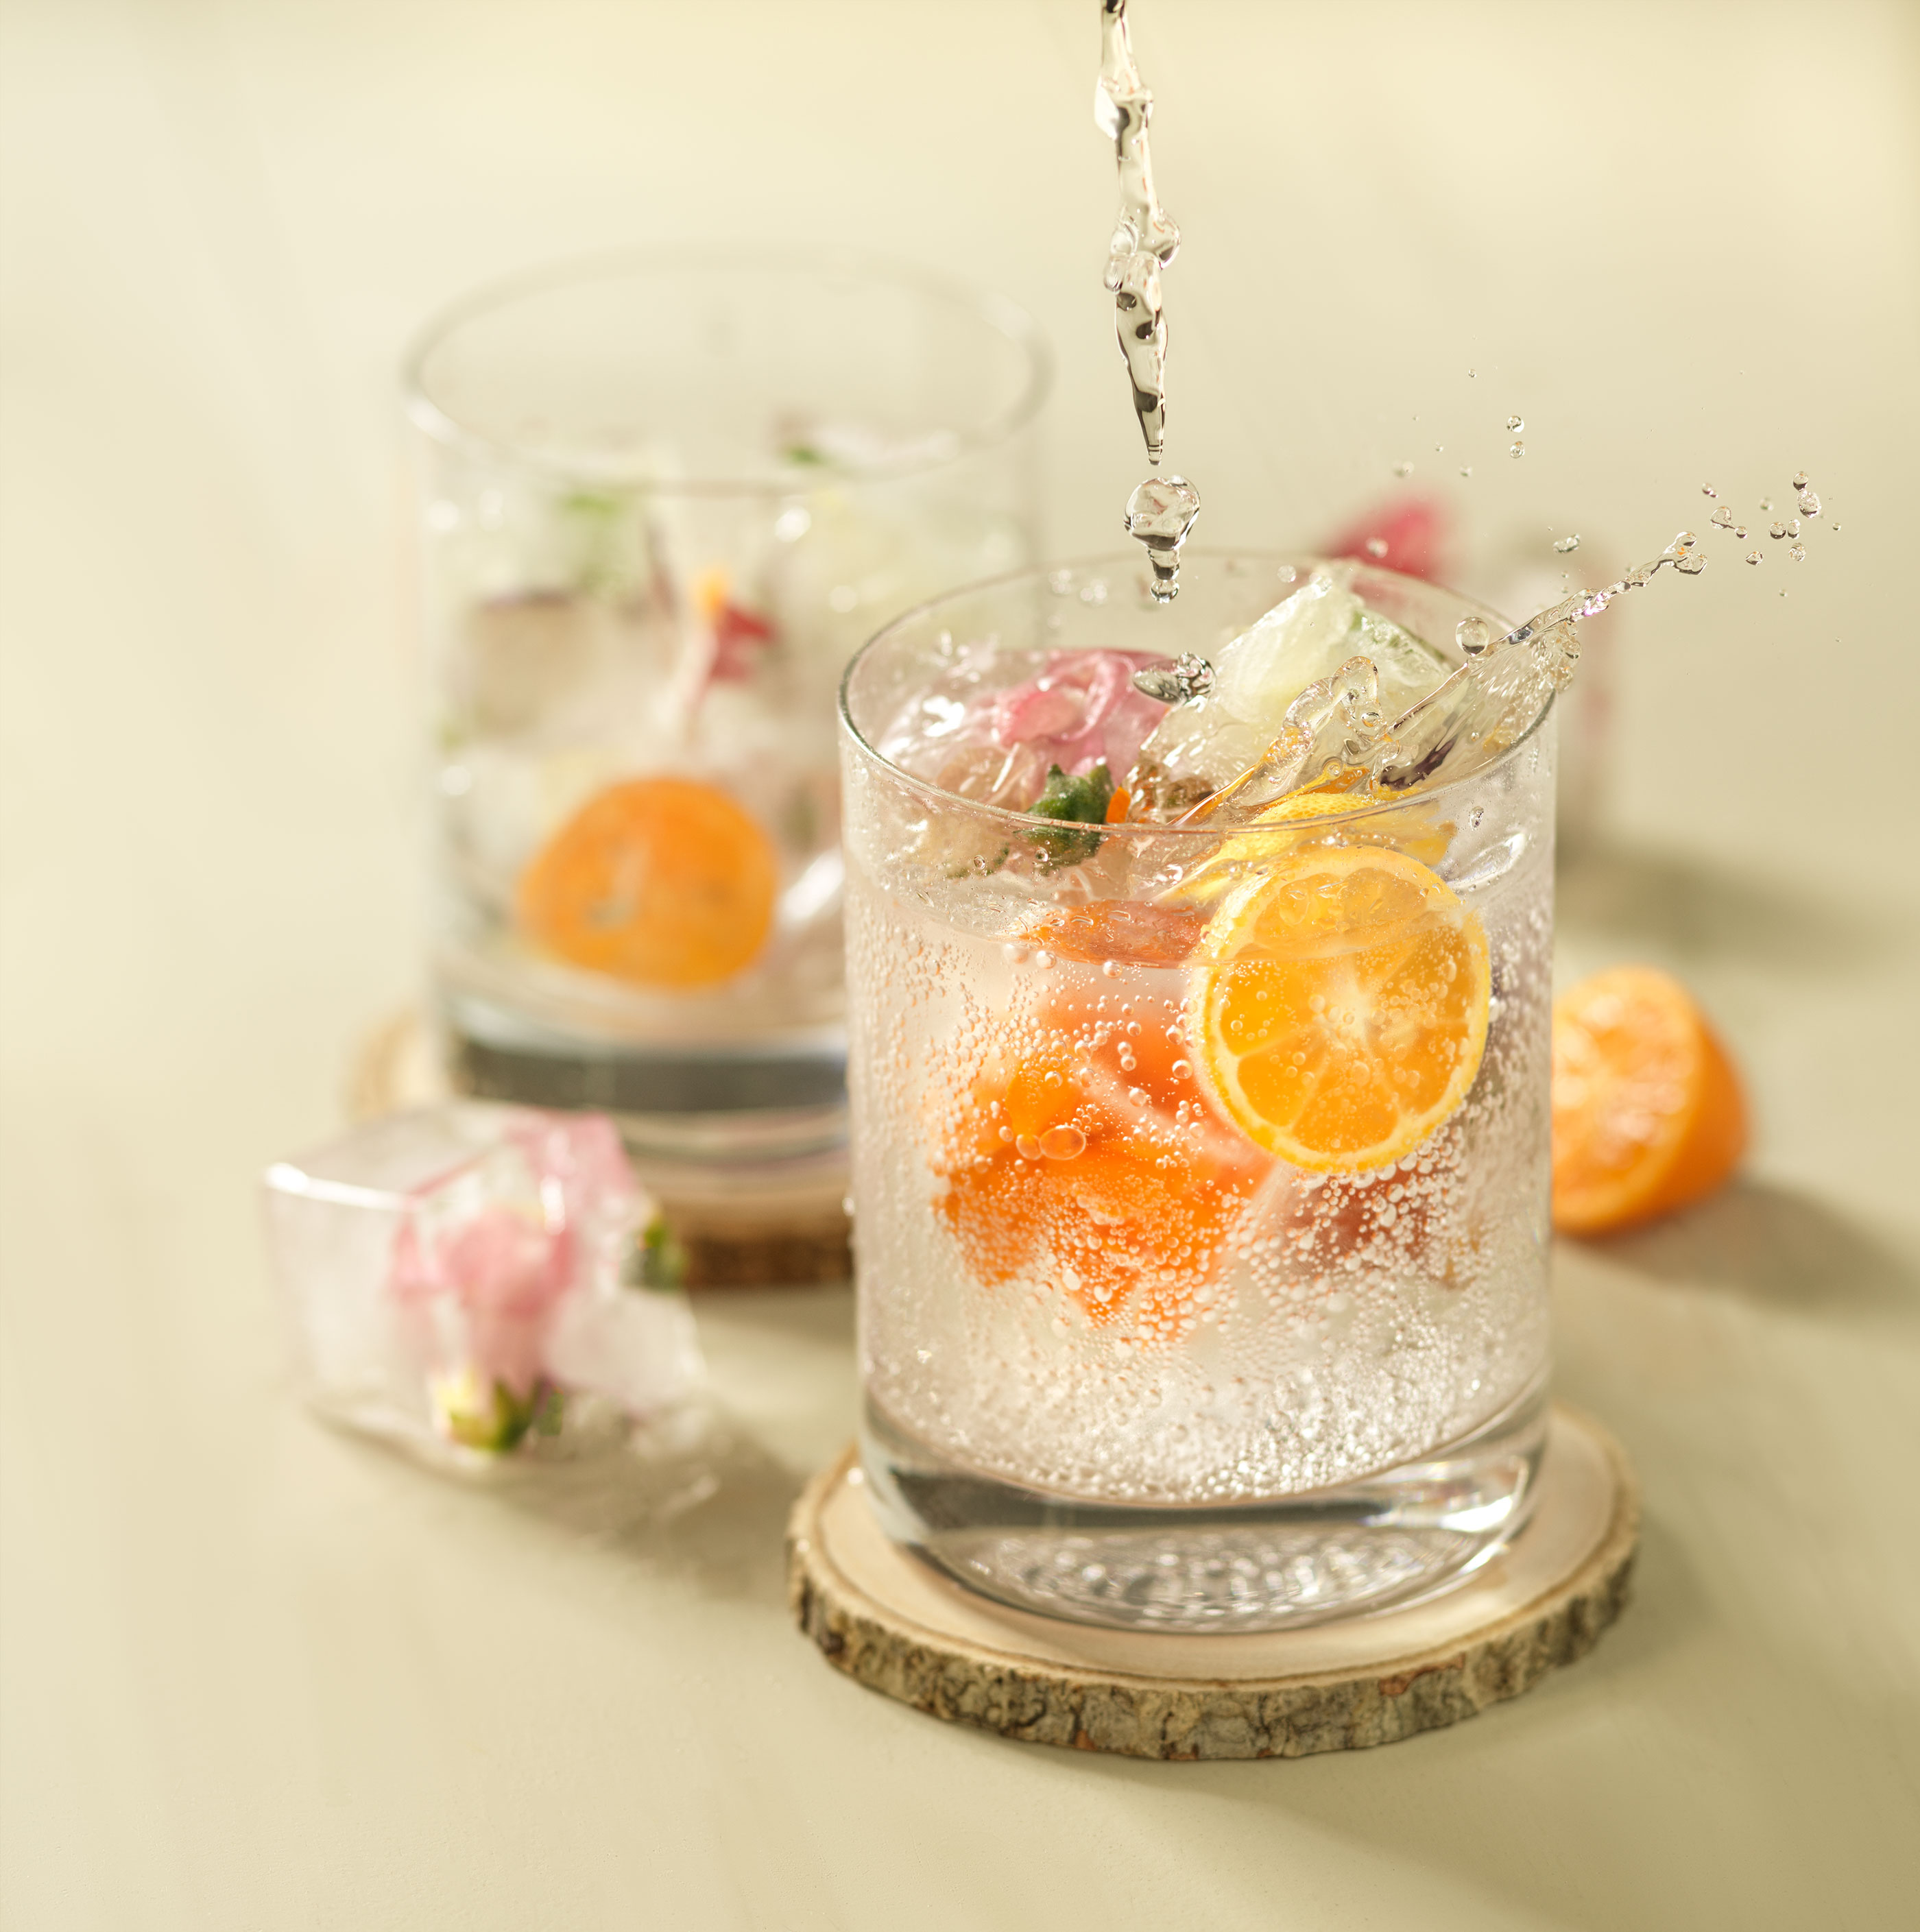 Flower Spritzer | Steve Hansen Images Seattle Food Photographer